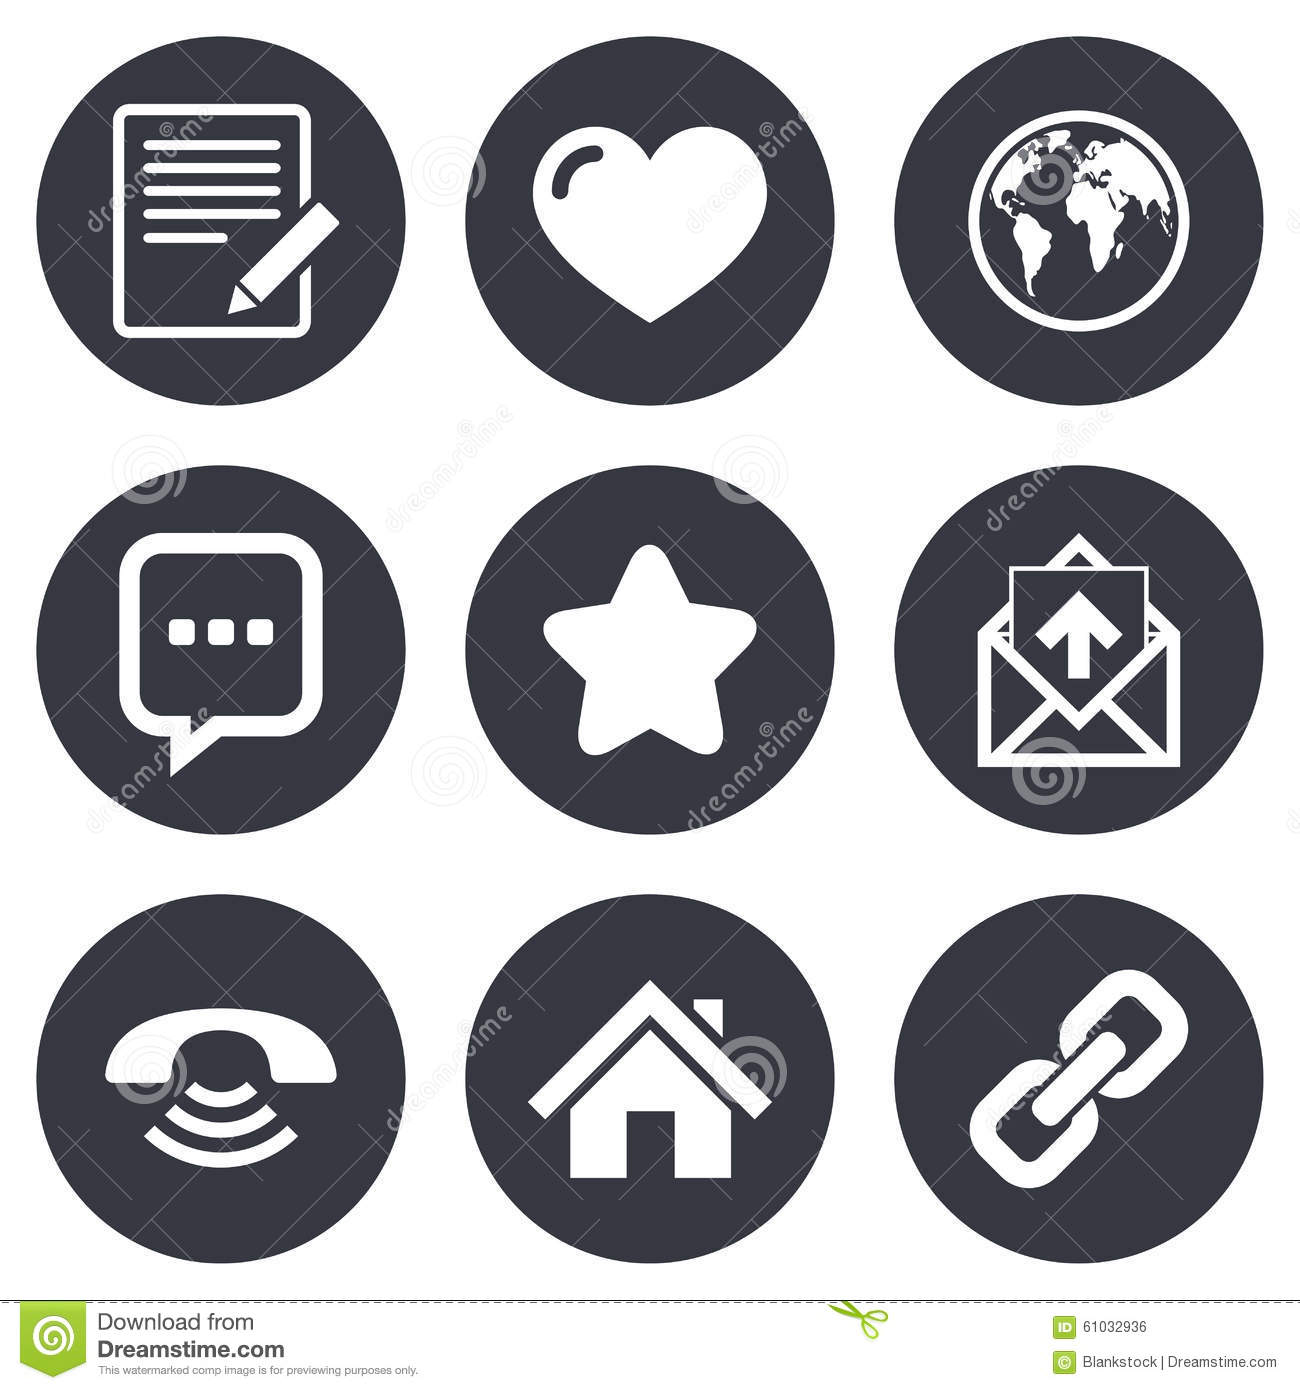 Mail contact icons communication signs stock vector communication signs biocorpaavc Gallery